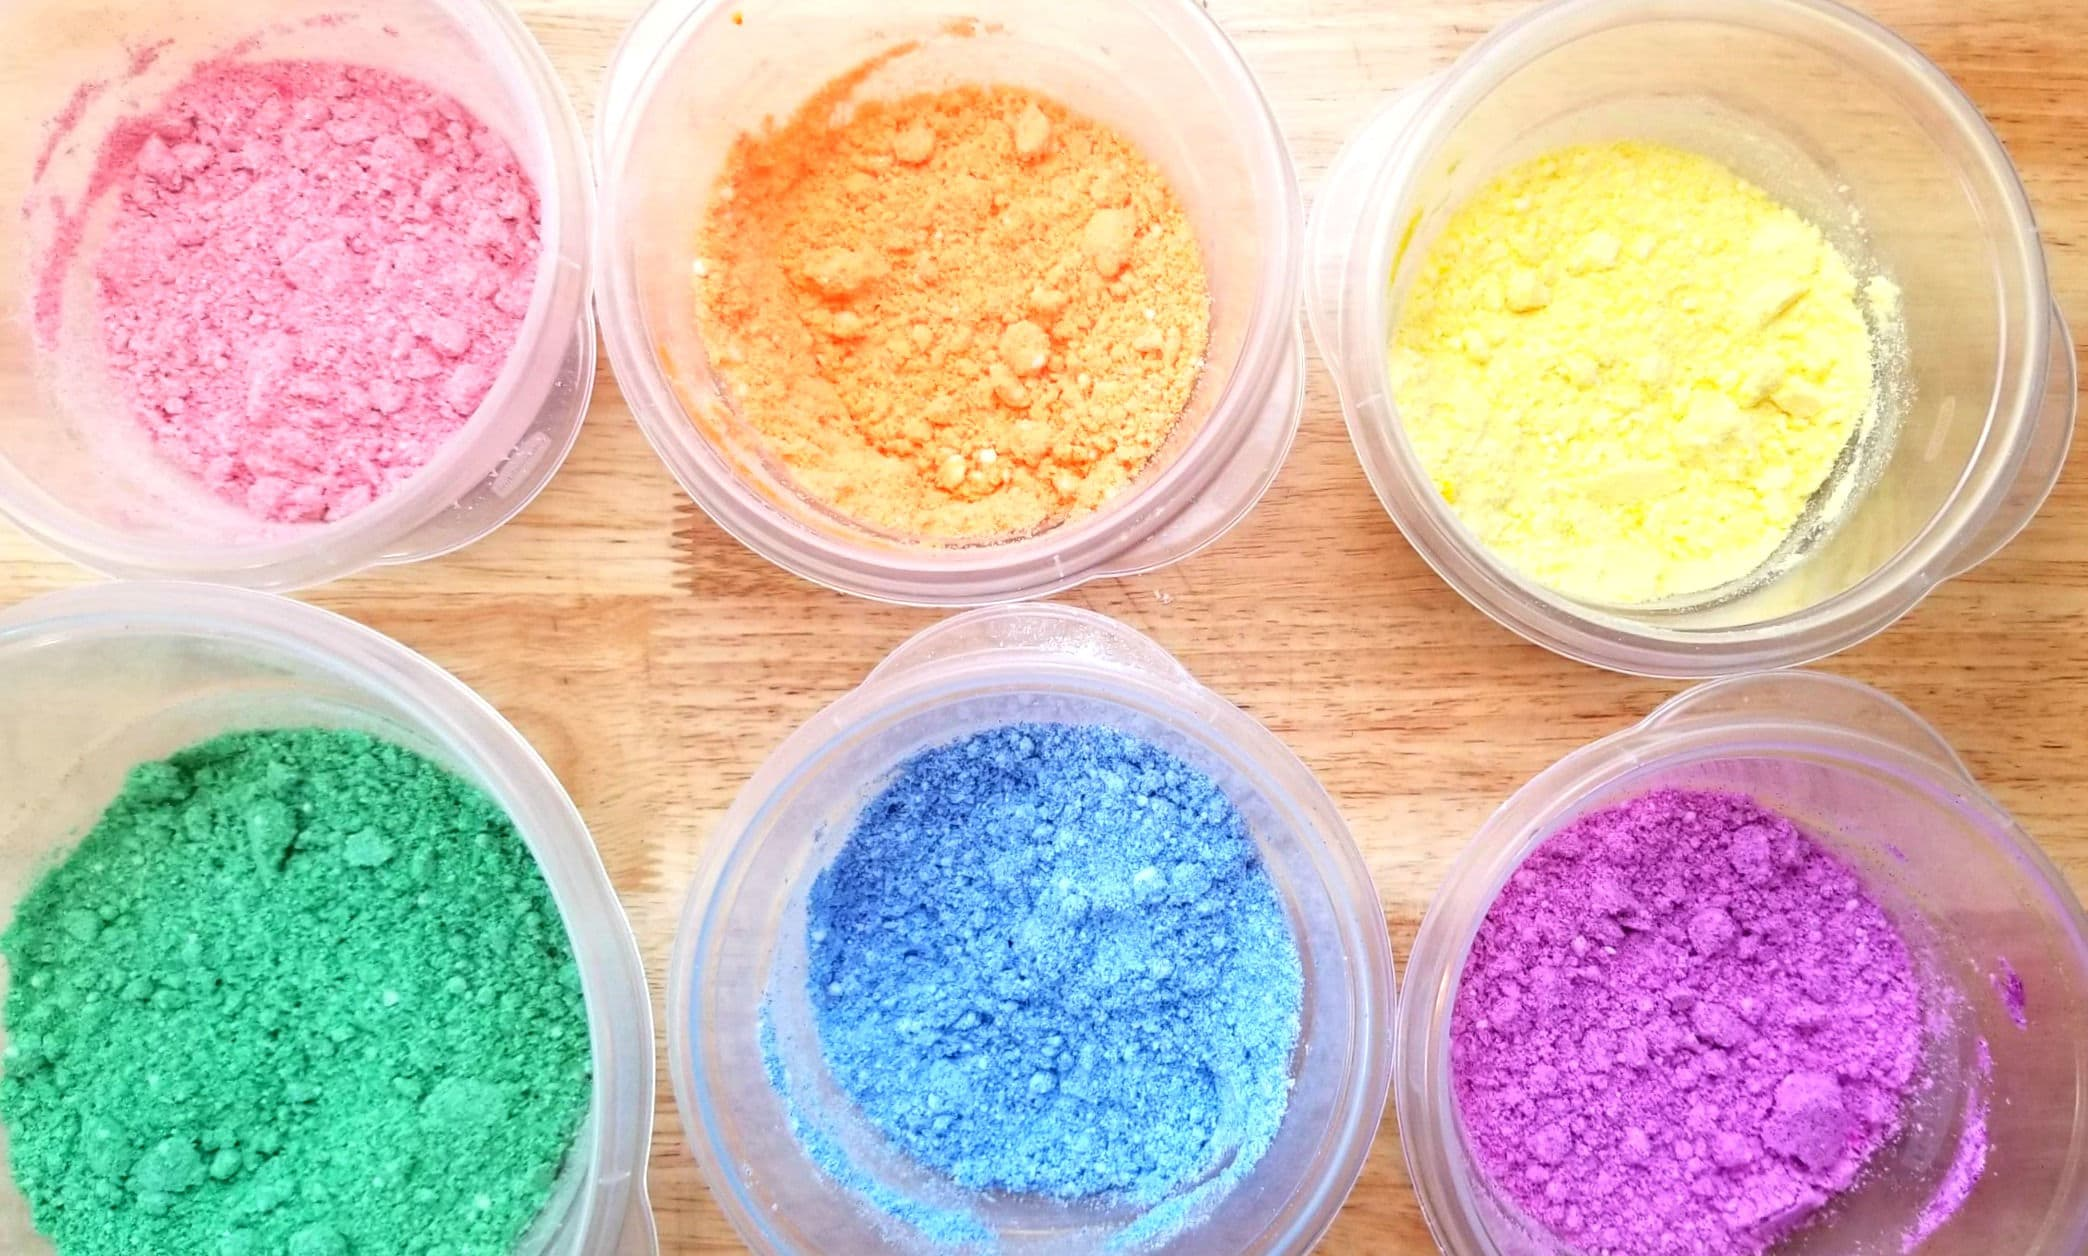 small bowls of differently colored bath bomb ingredients